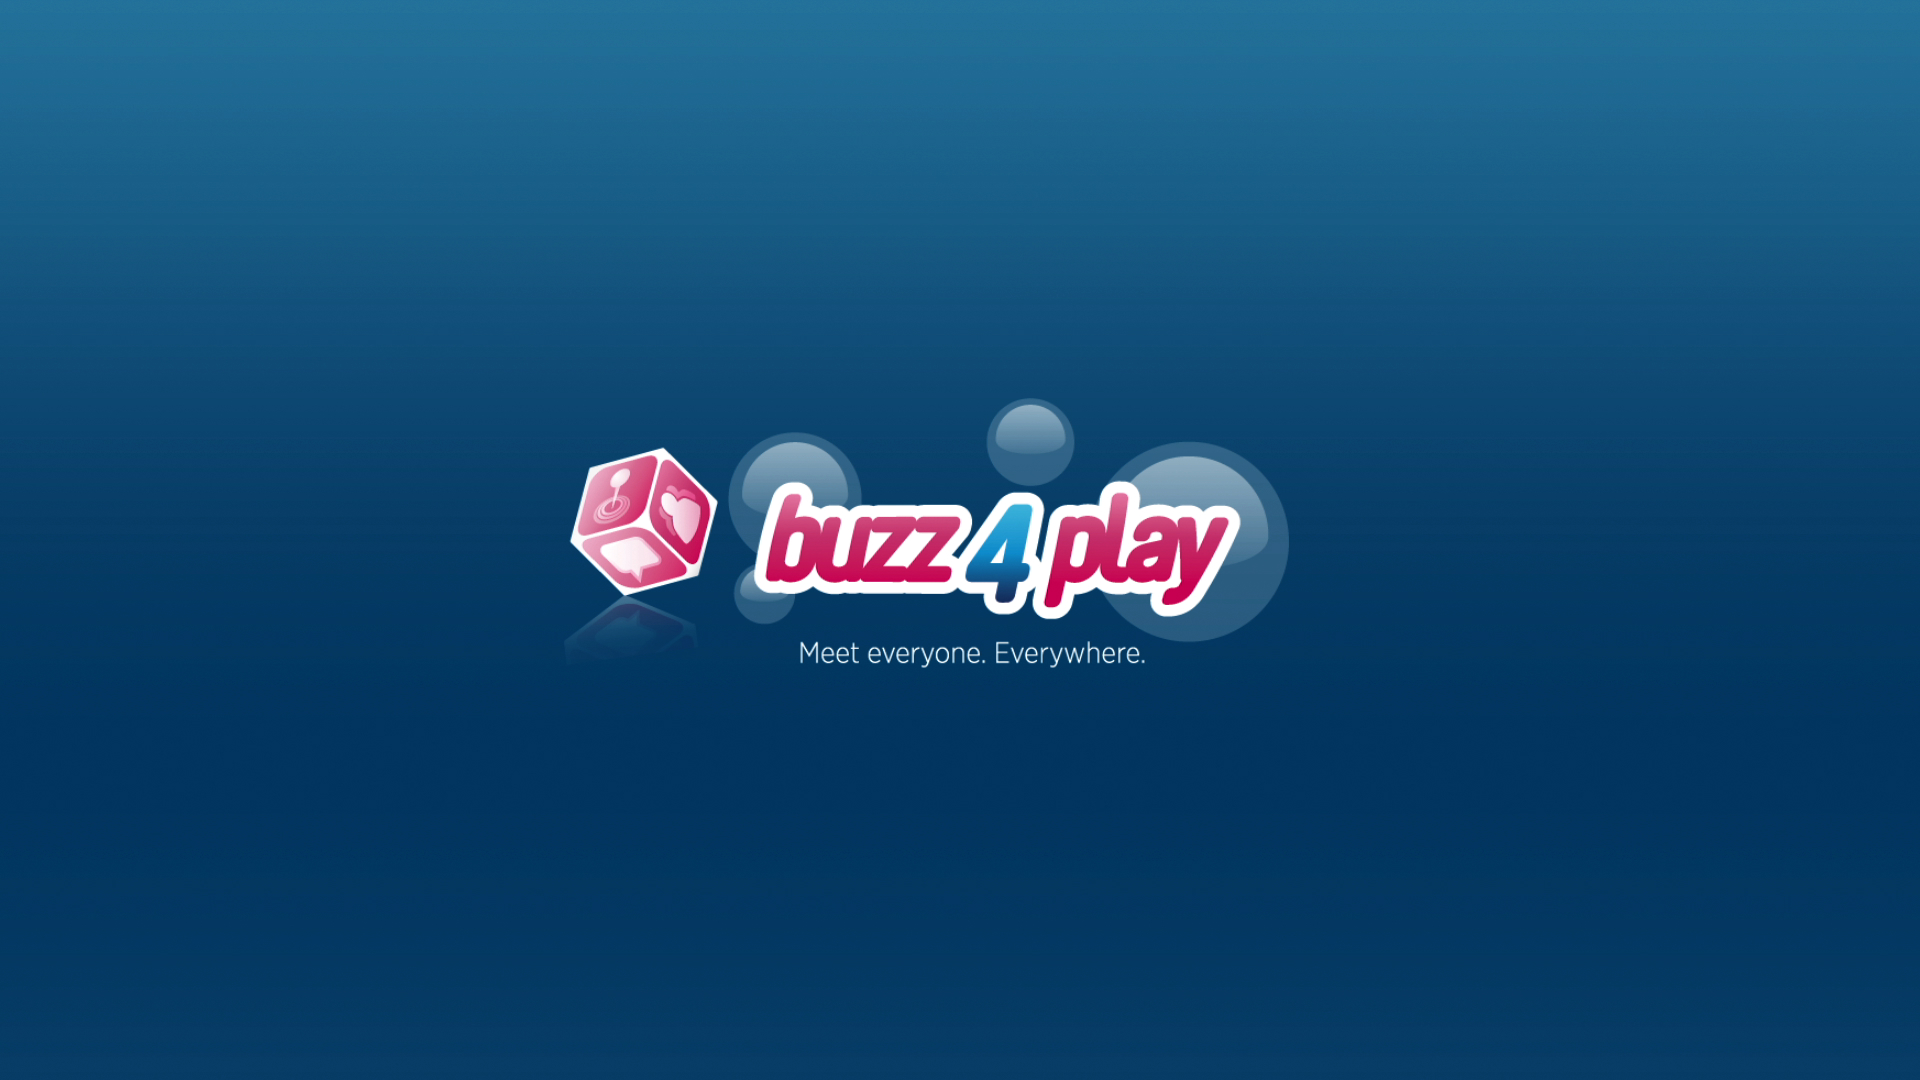 Pub Buzz4Play Rubigo